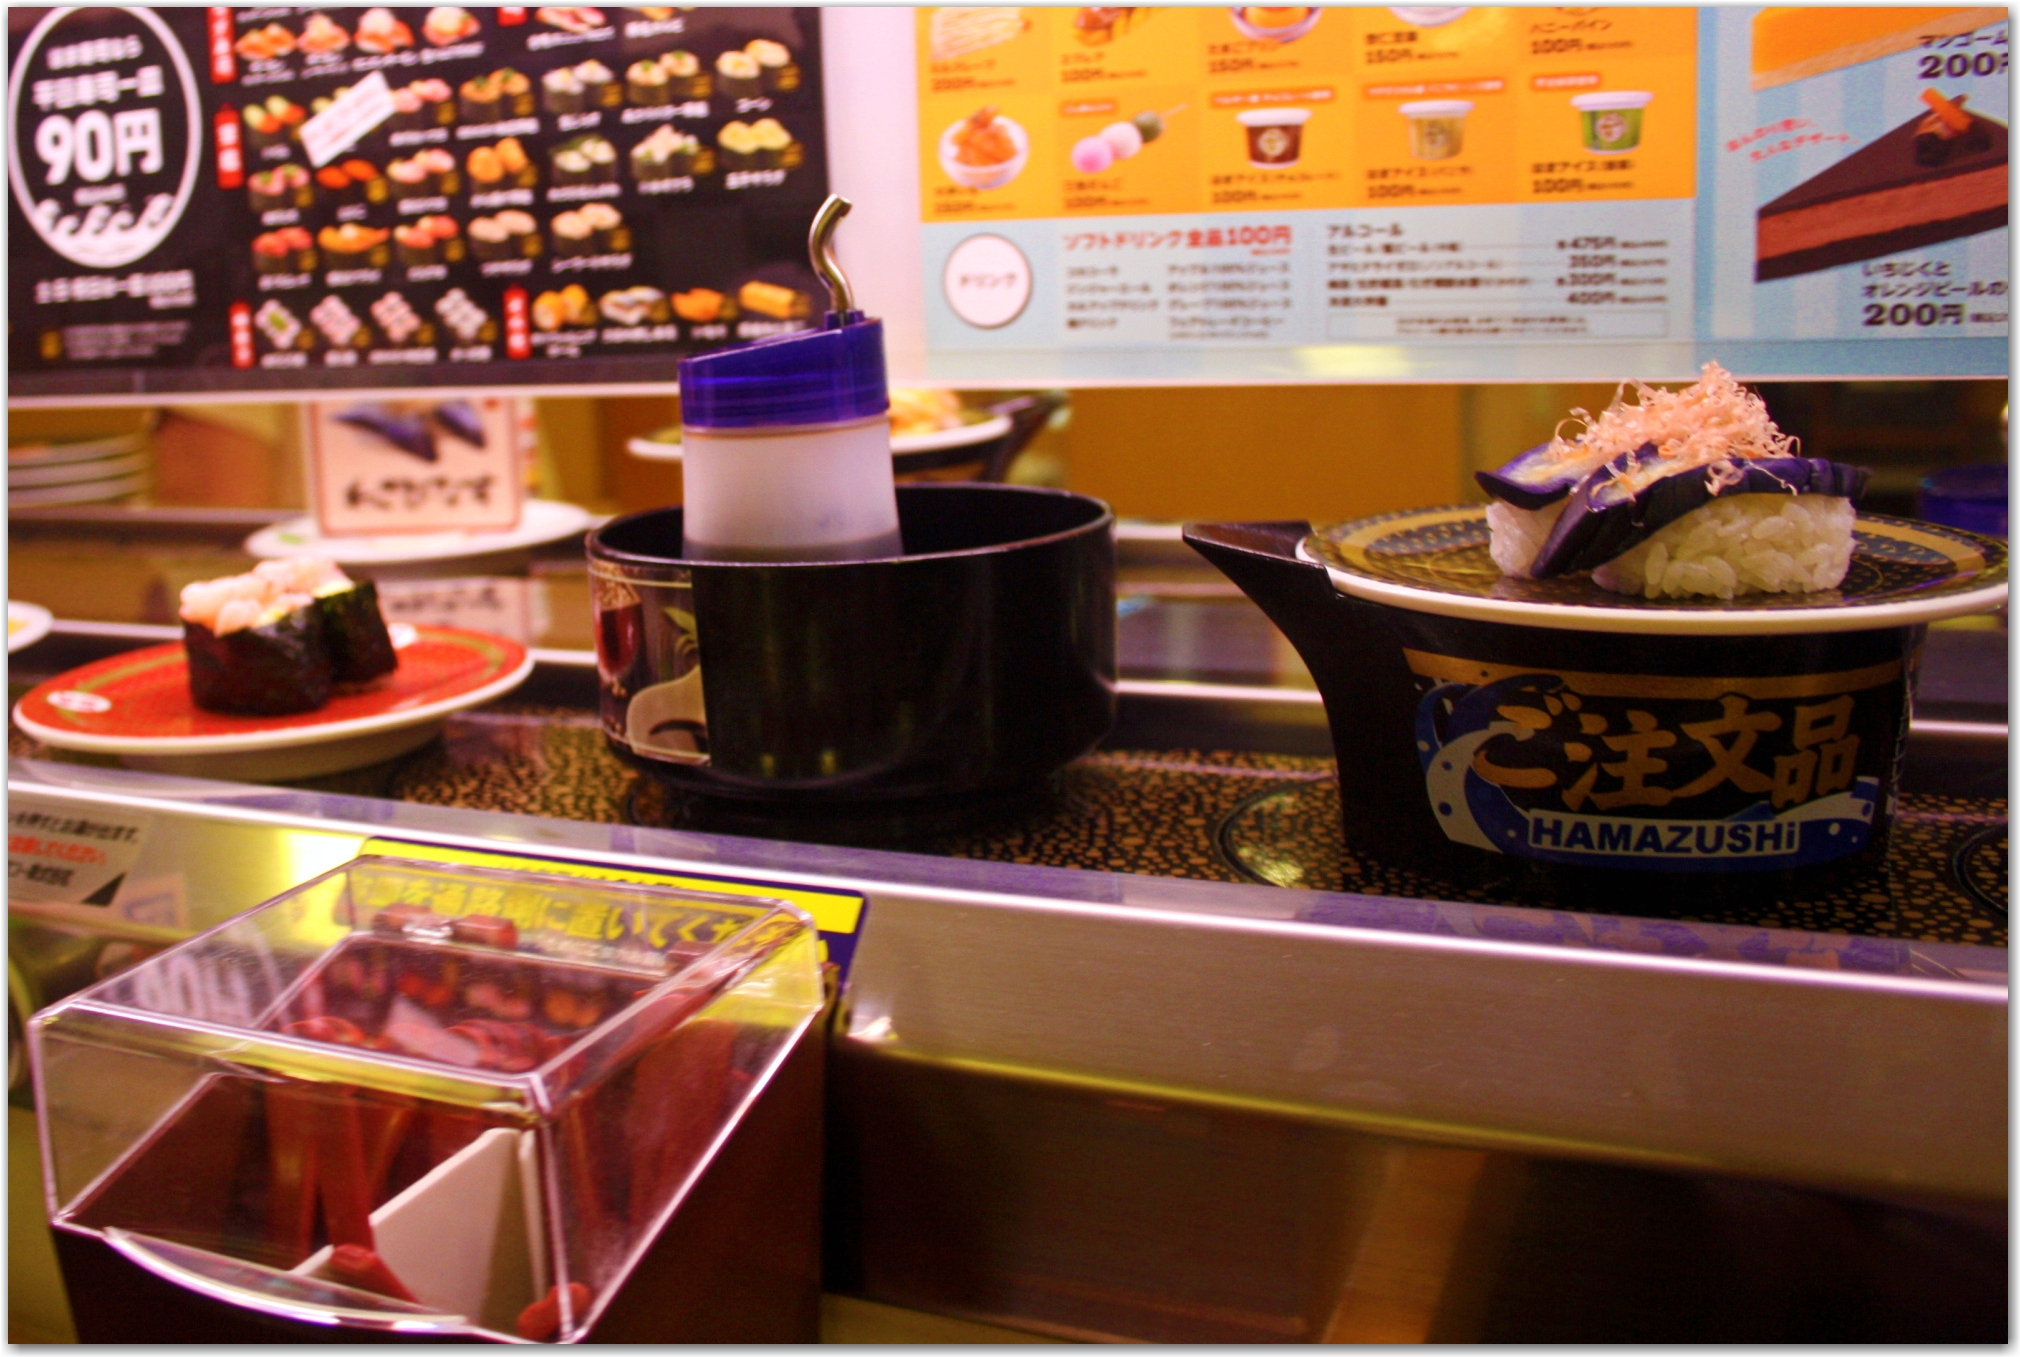 touch screen conveyor belt sushi